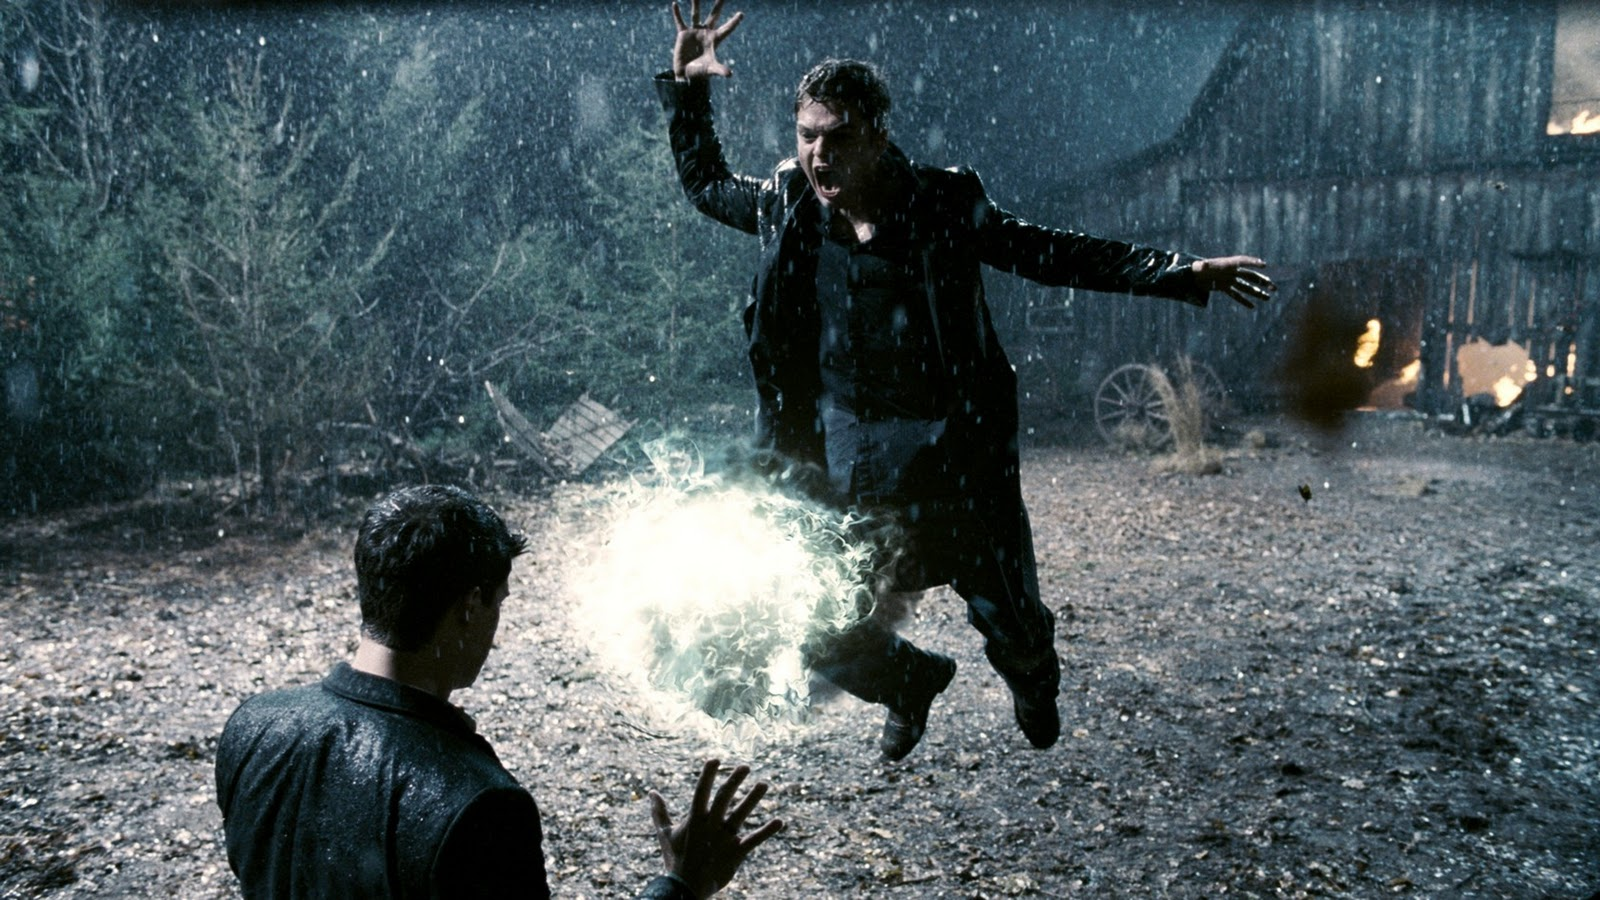 Magical combat between (l to r) Steve Strait and Sebastian Stan in The Covenant (2006)